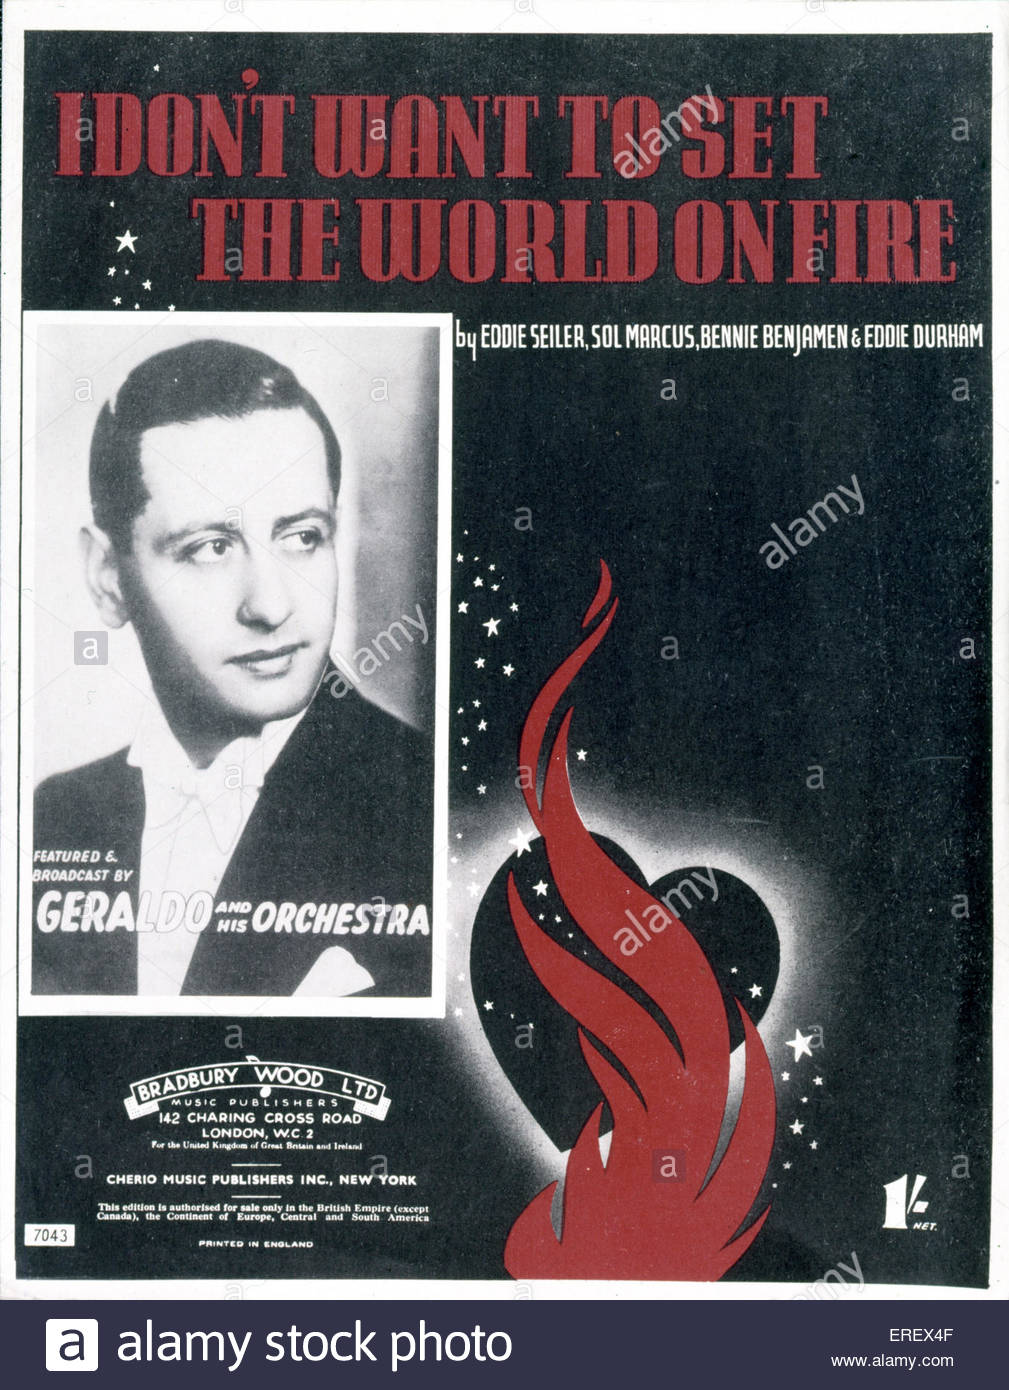 I Don't Want to Set the World on Fire' - song score cover. World War 2. Written by Eddie Seller, Sol Marcus, - Stock Image